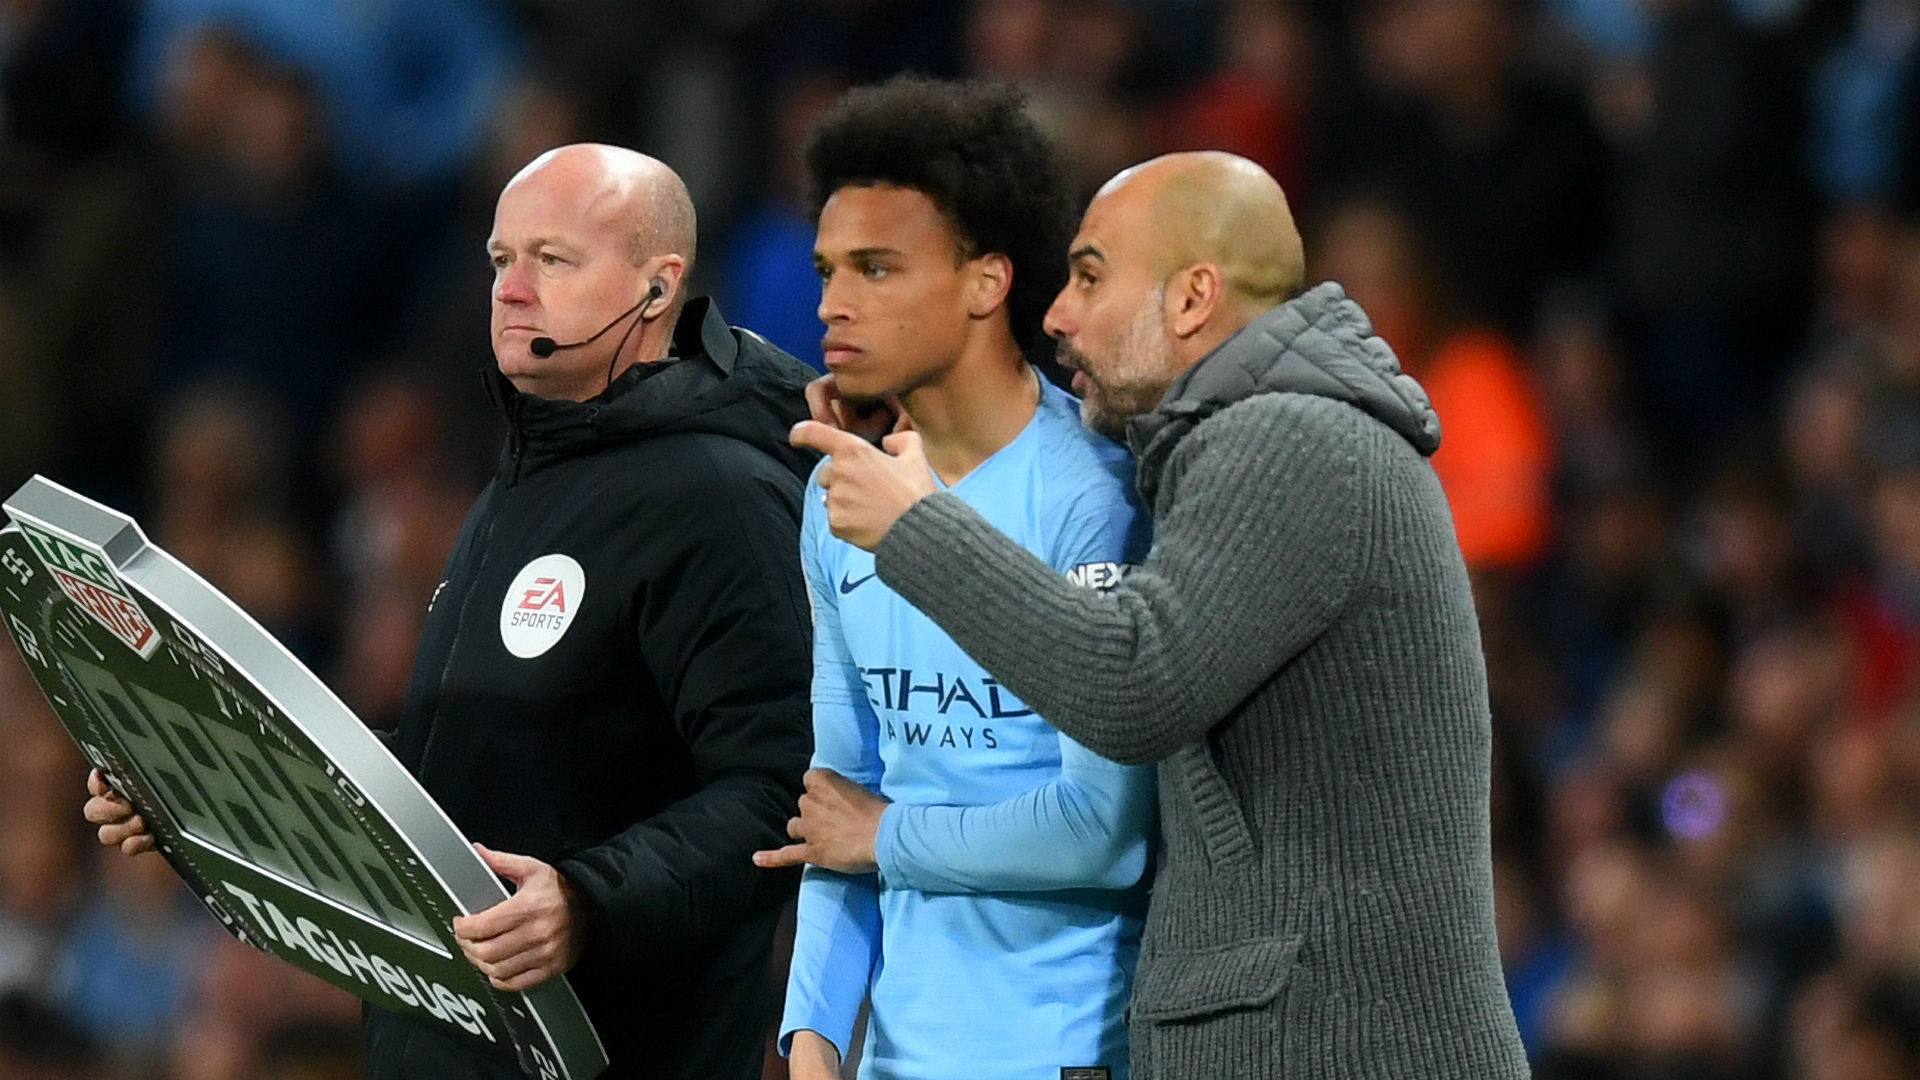 Bayern target Sane would be better off at Man City, says Pep